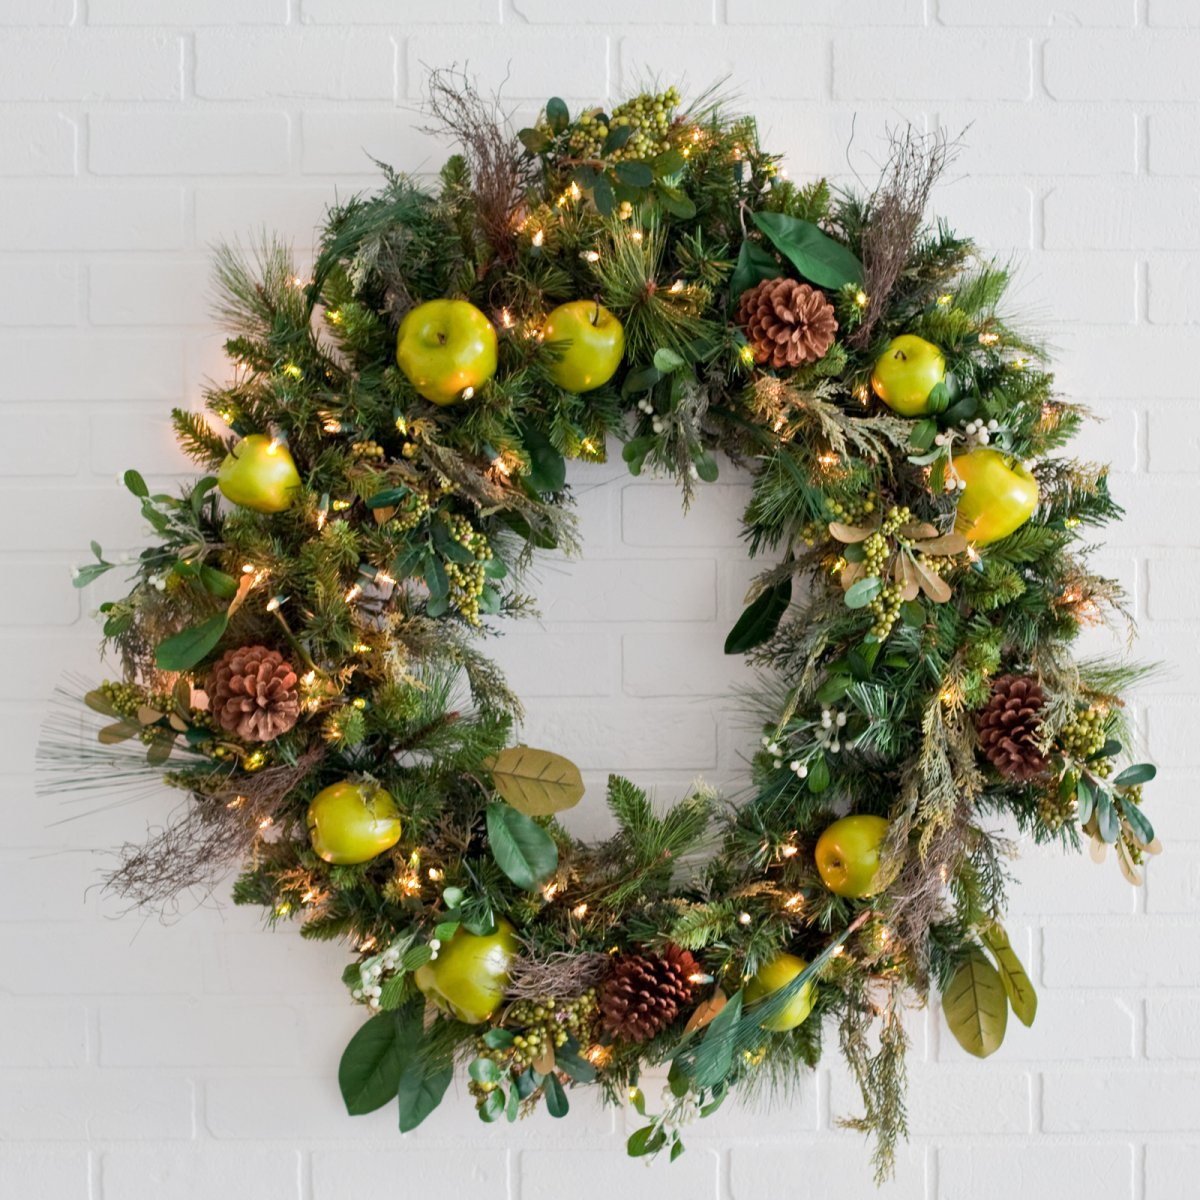 How To Decorate A Christmas Wreath Pictures Wallpapers